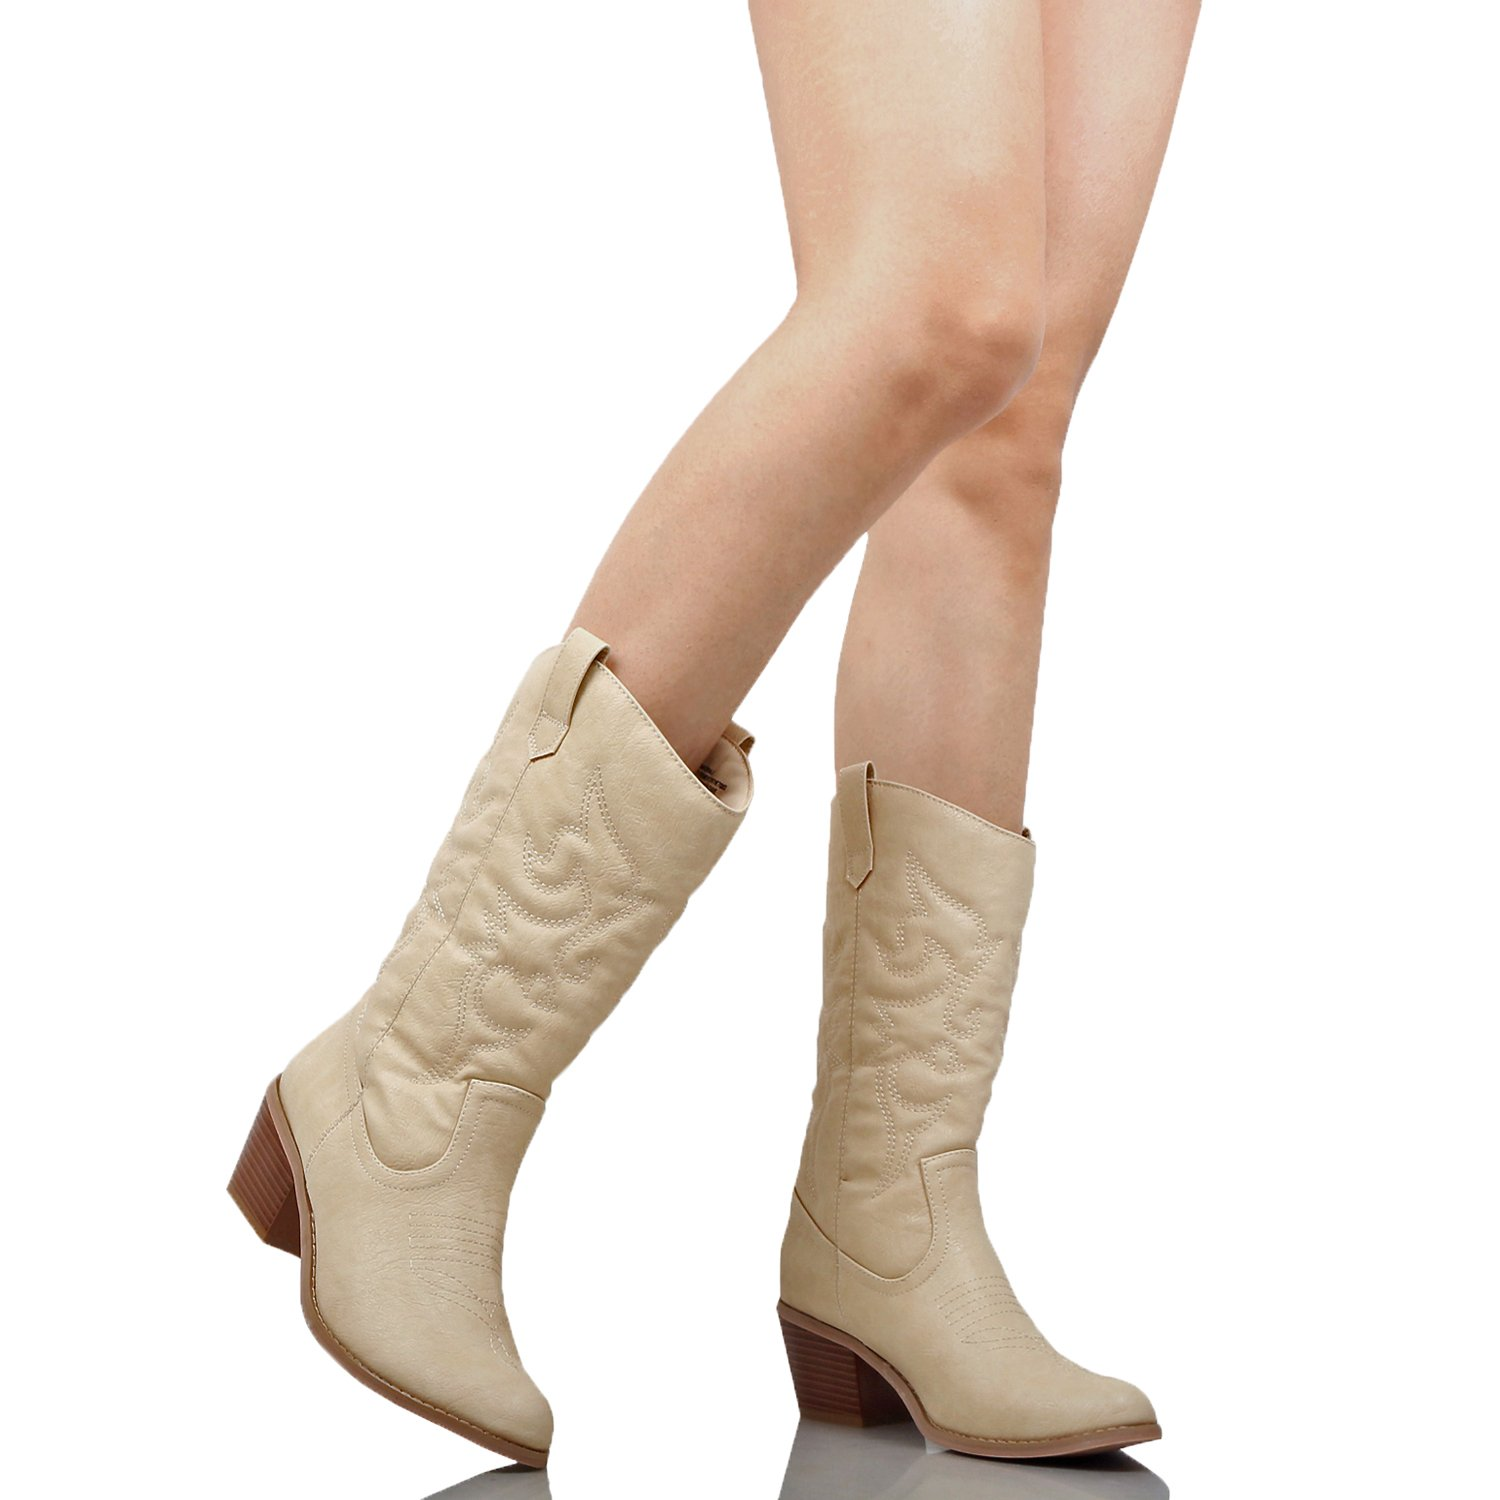 West Blvd Miami Cowboy Western Boots Boots, Beige Pu, 10 (B) M US by West Blvd (Image #6)